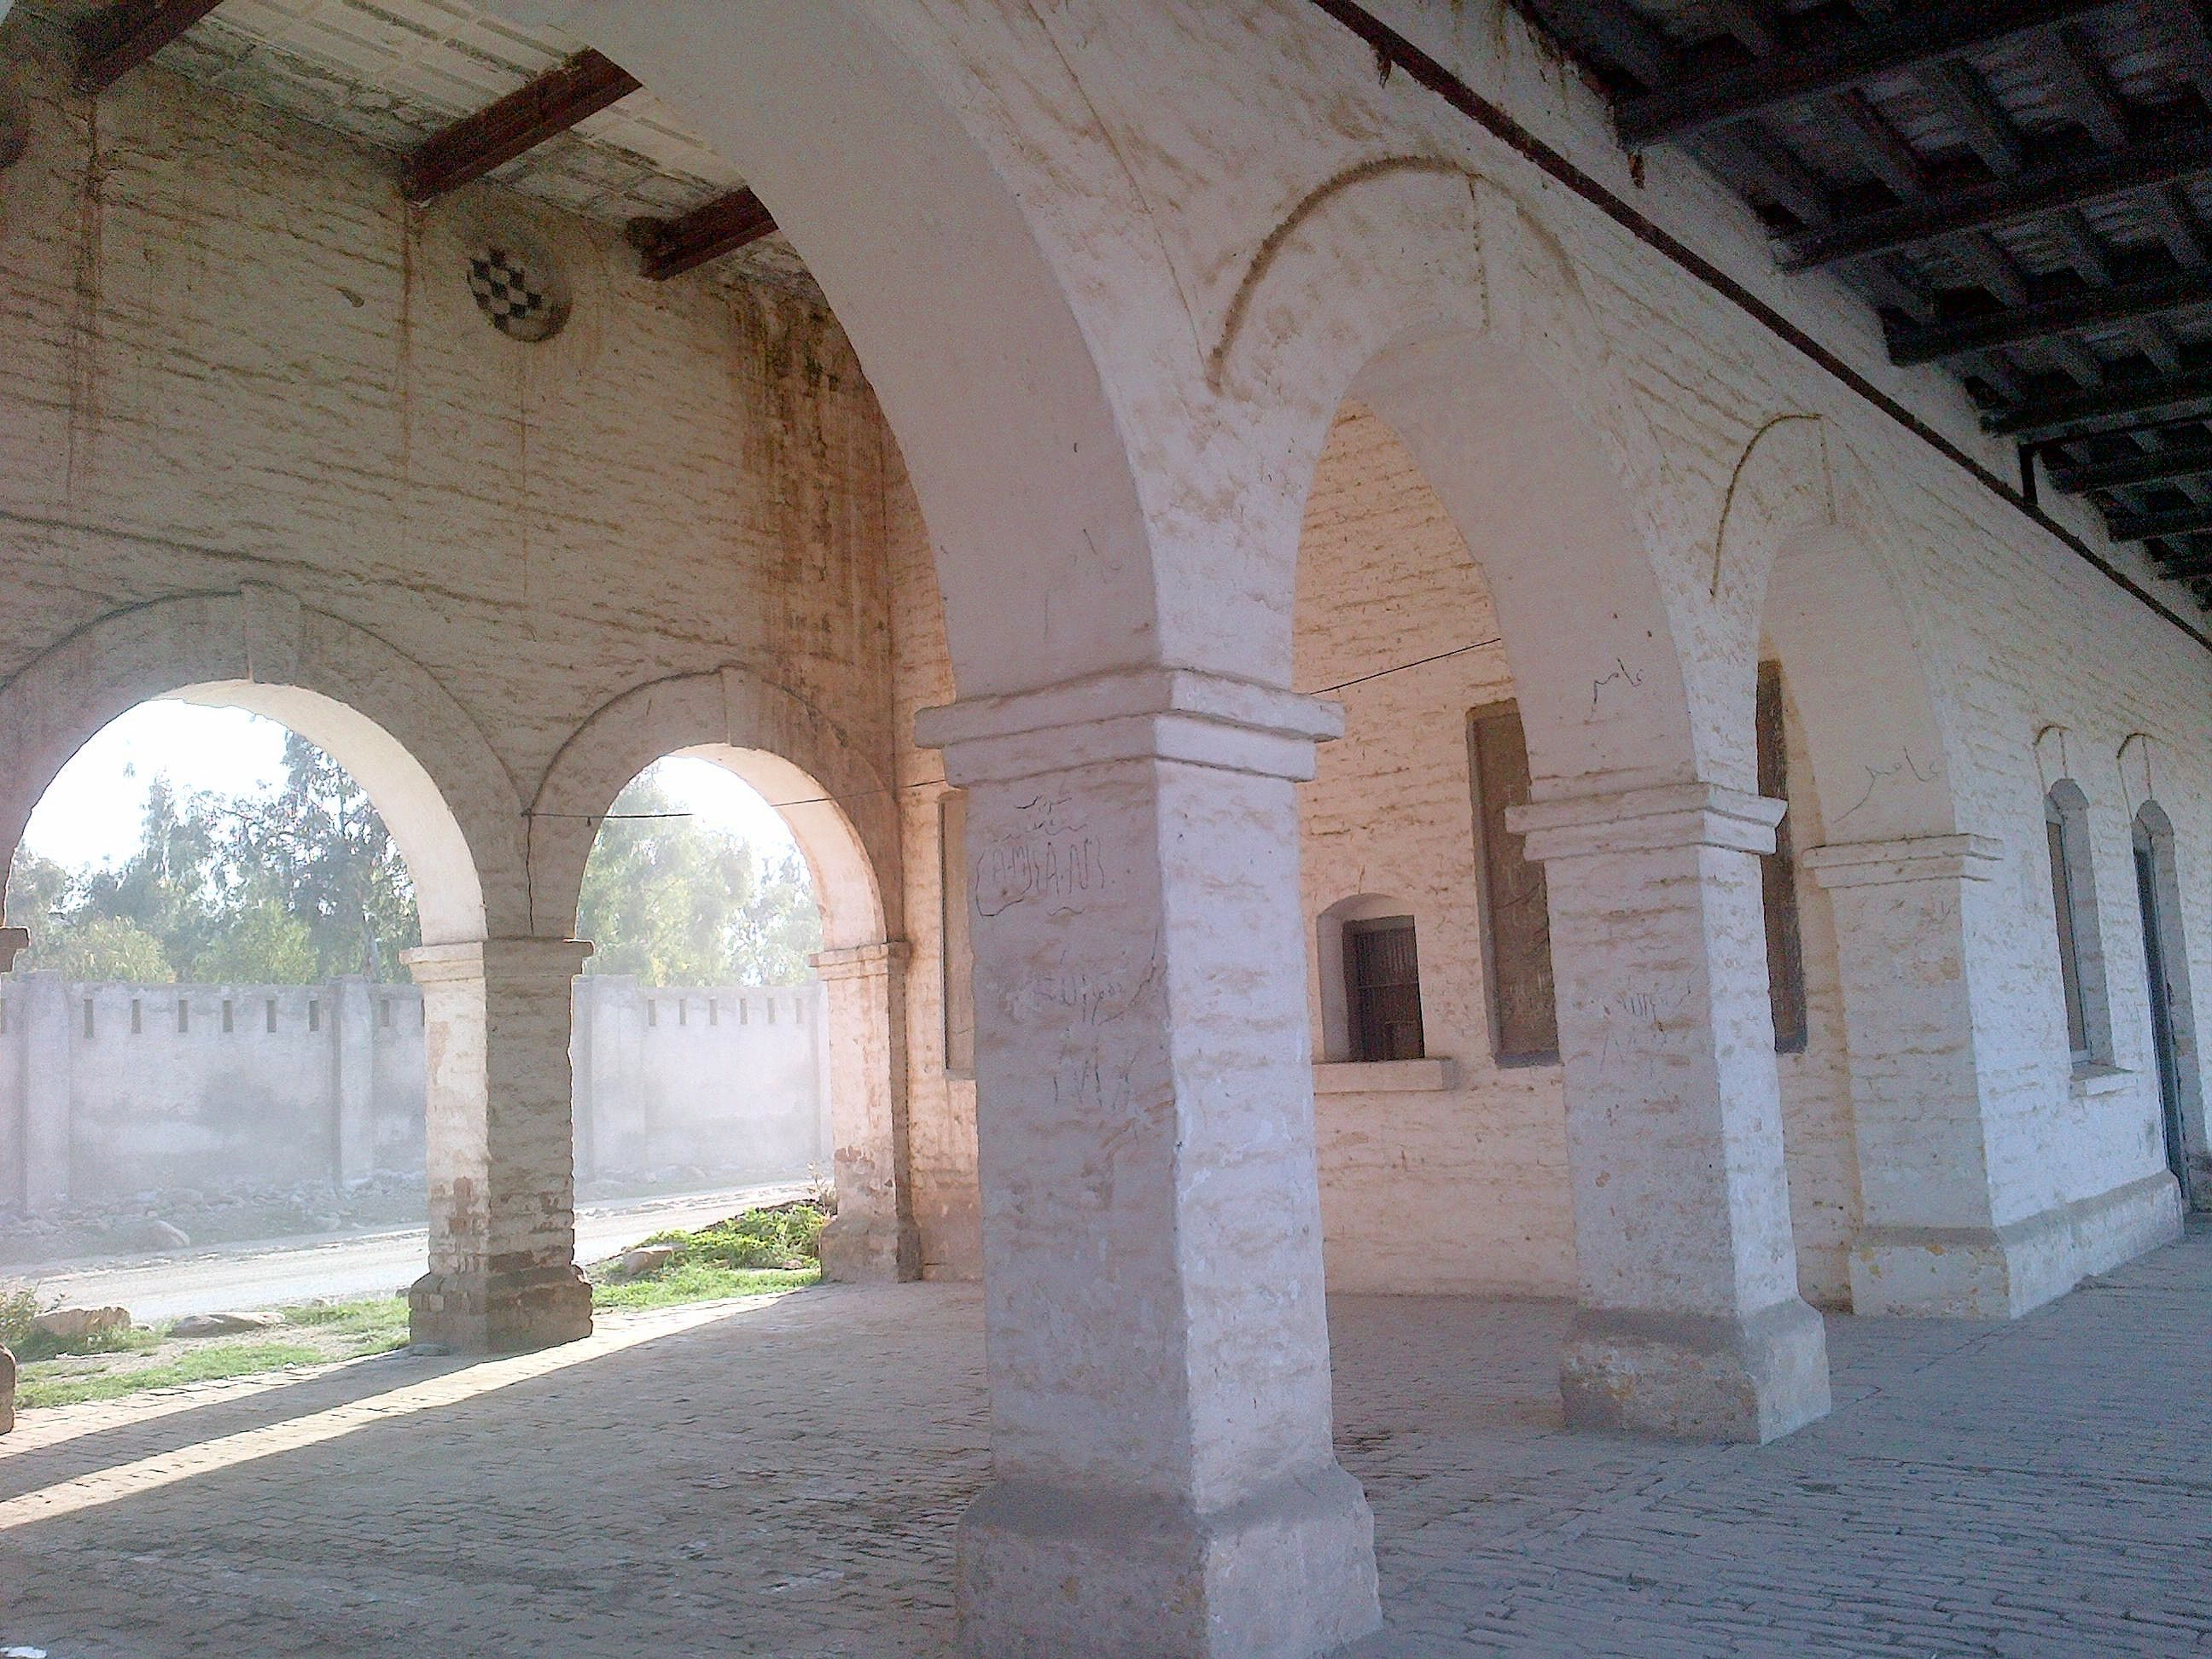 Station Building, arches in the verandah.